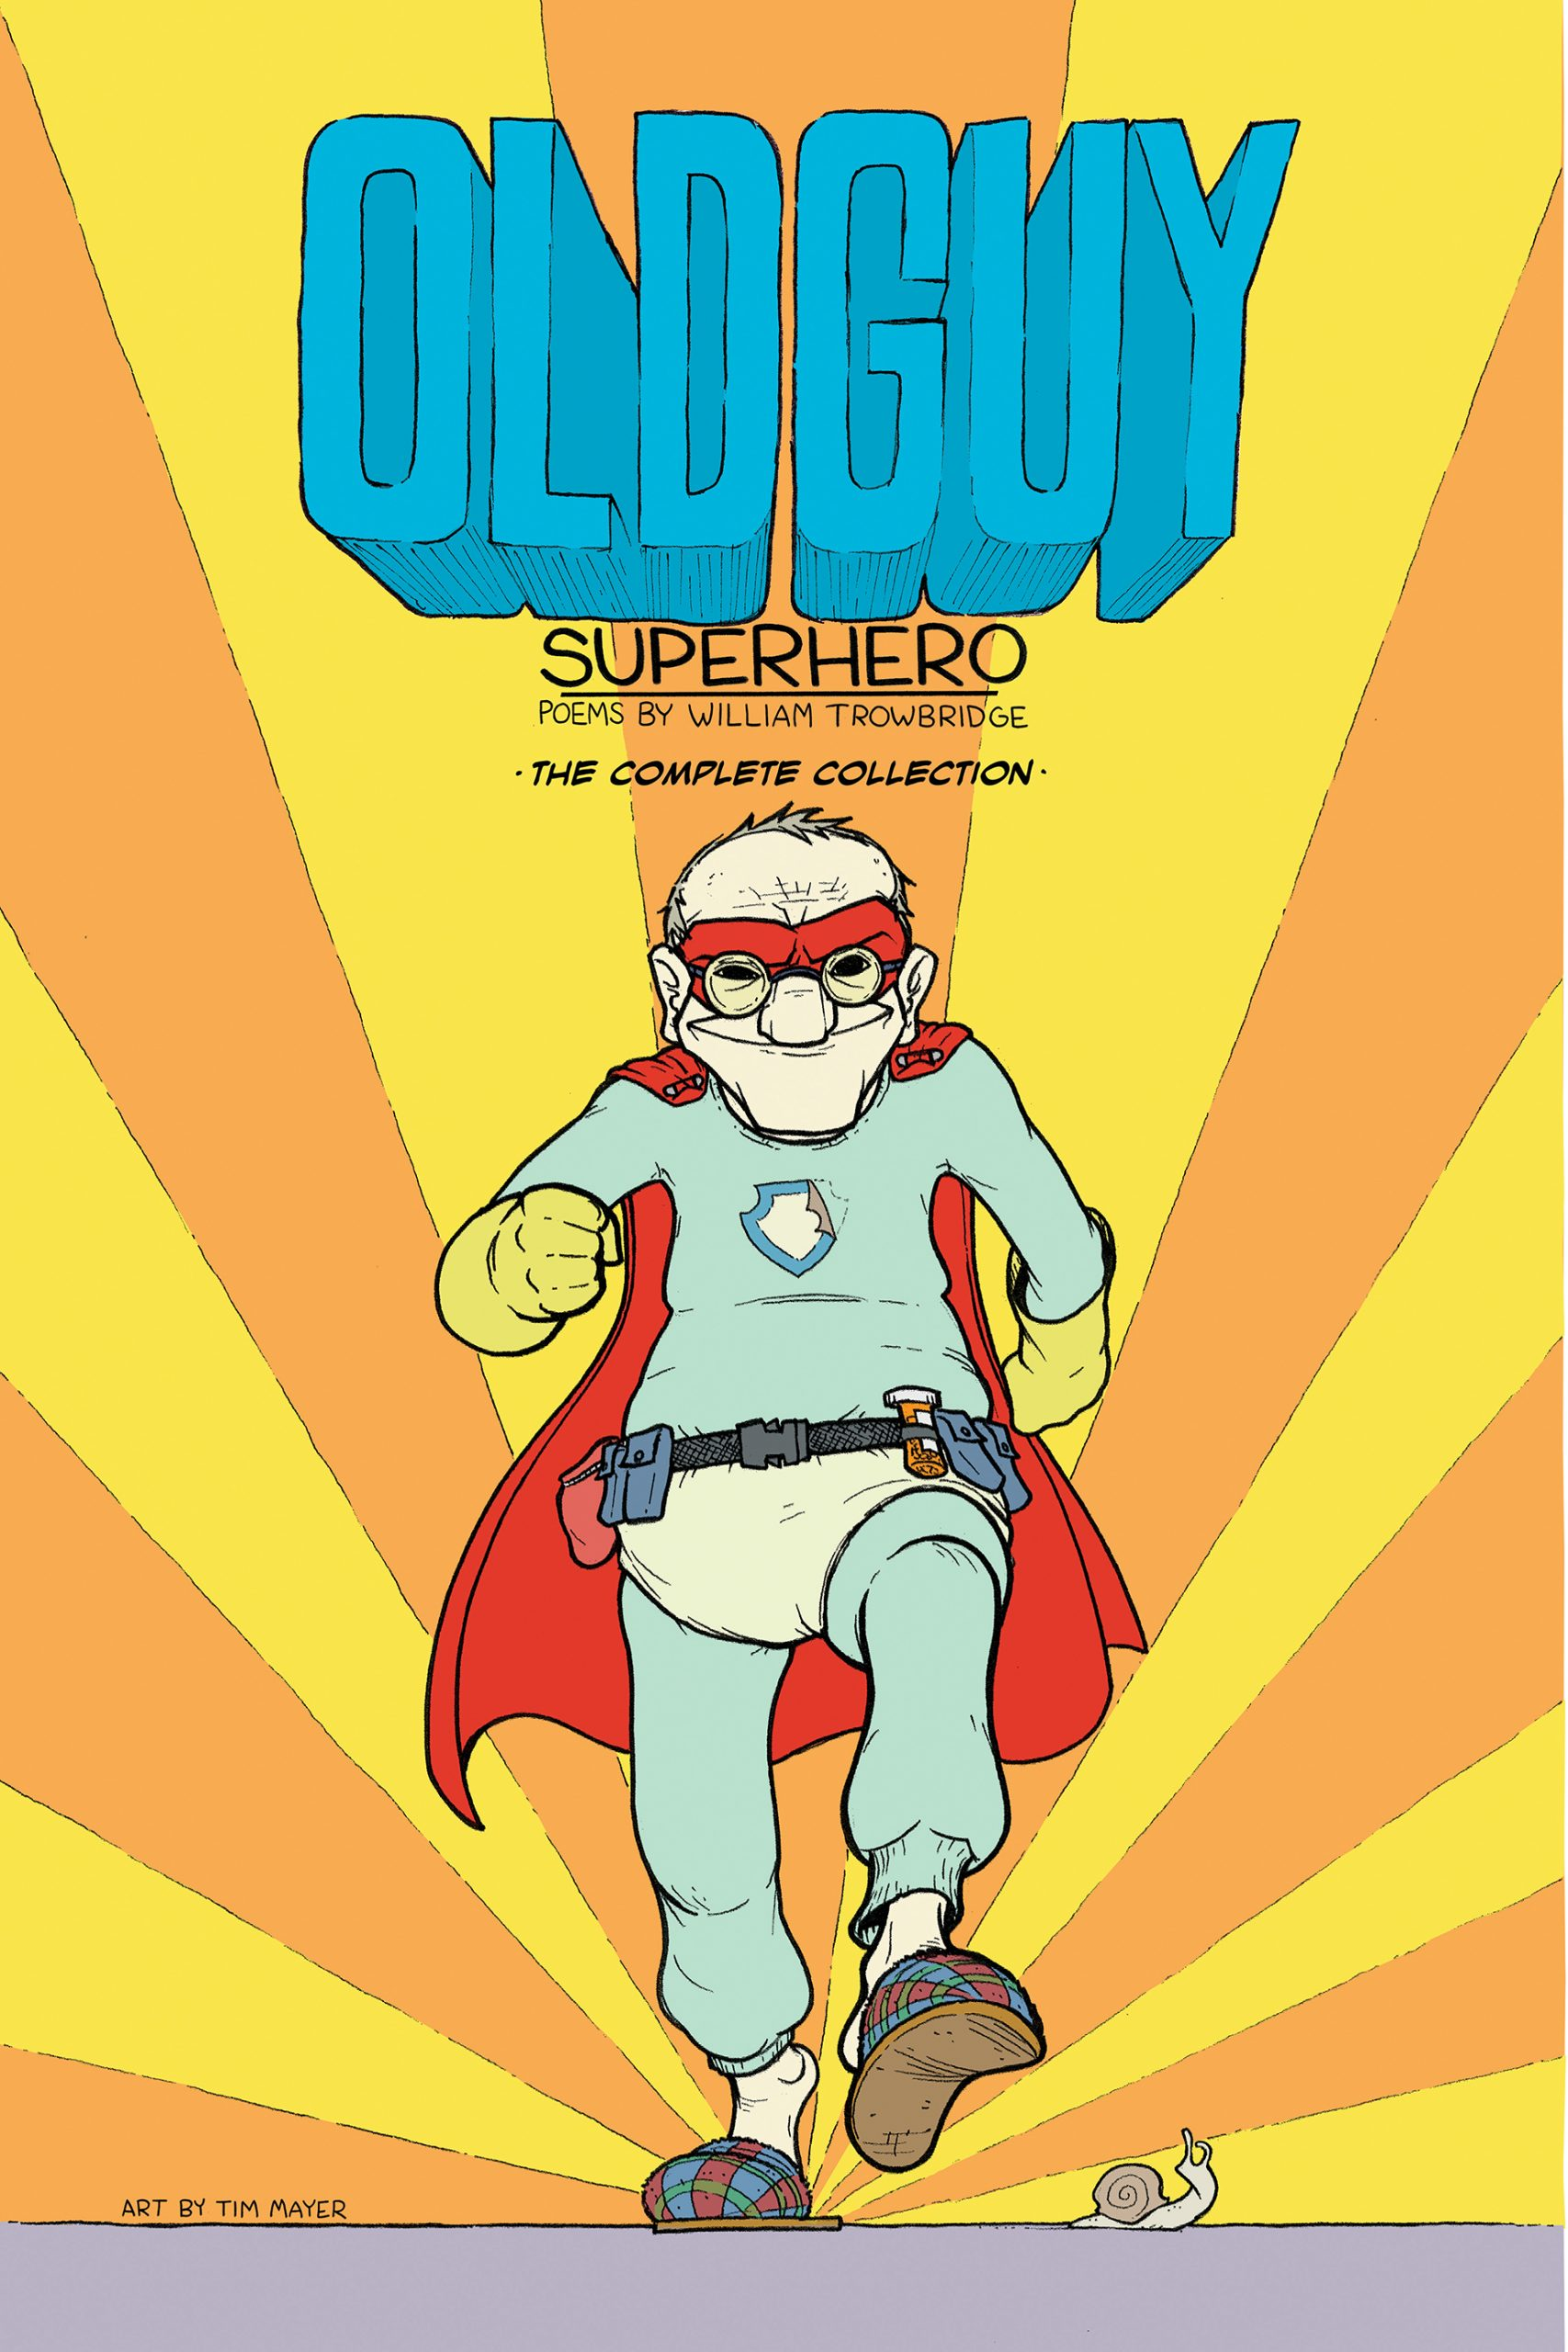 A graphic design of an old man dressed as a super hero with a snail at his feet and blue typography that reads Old Guy Superhero The Complete Collection poems by William Trowbridge.